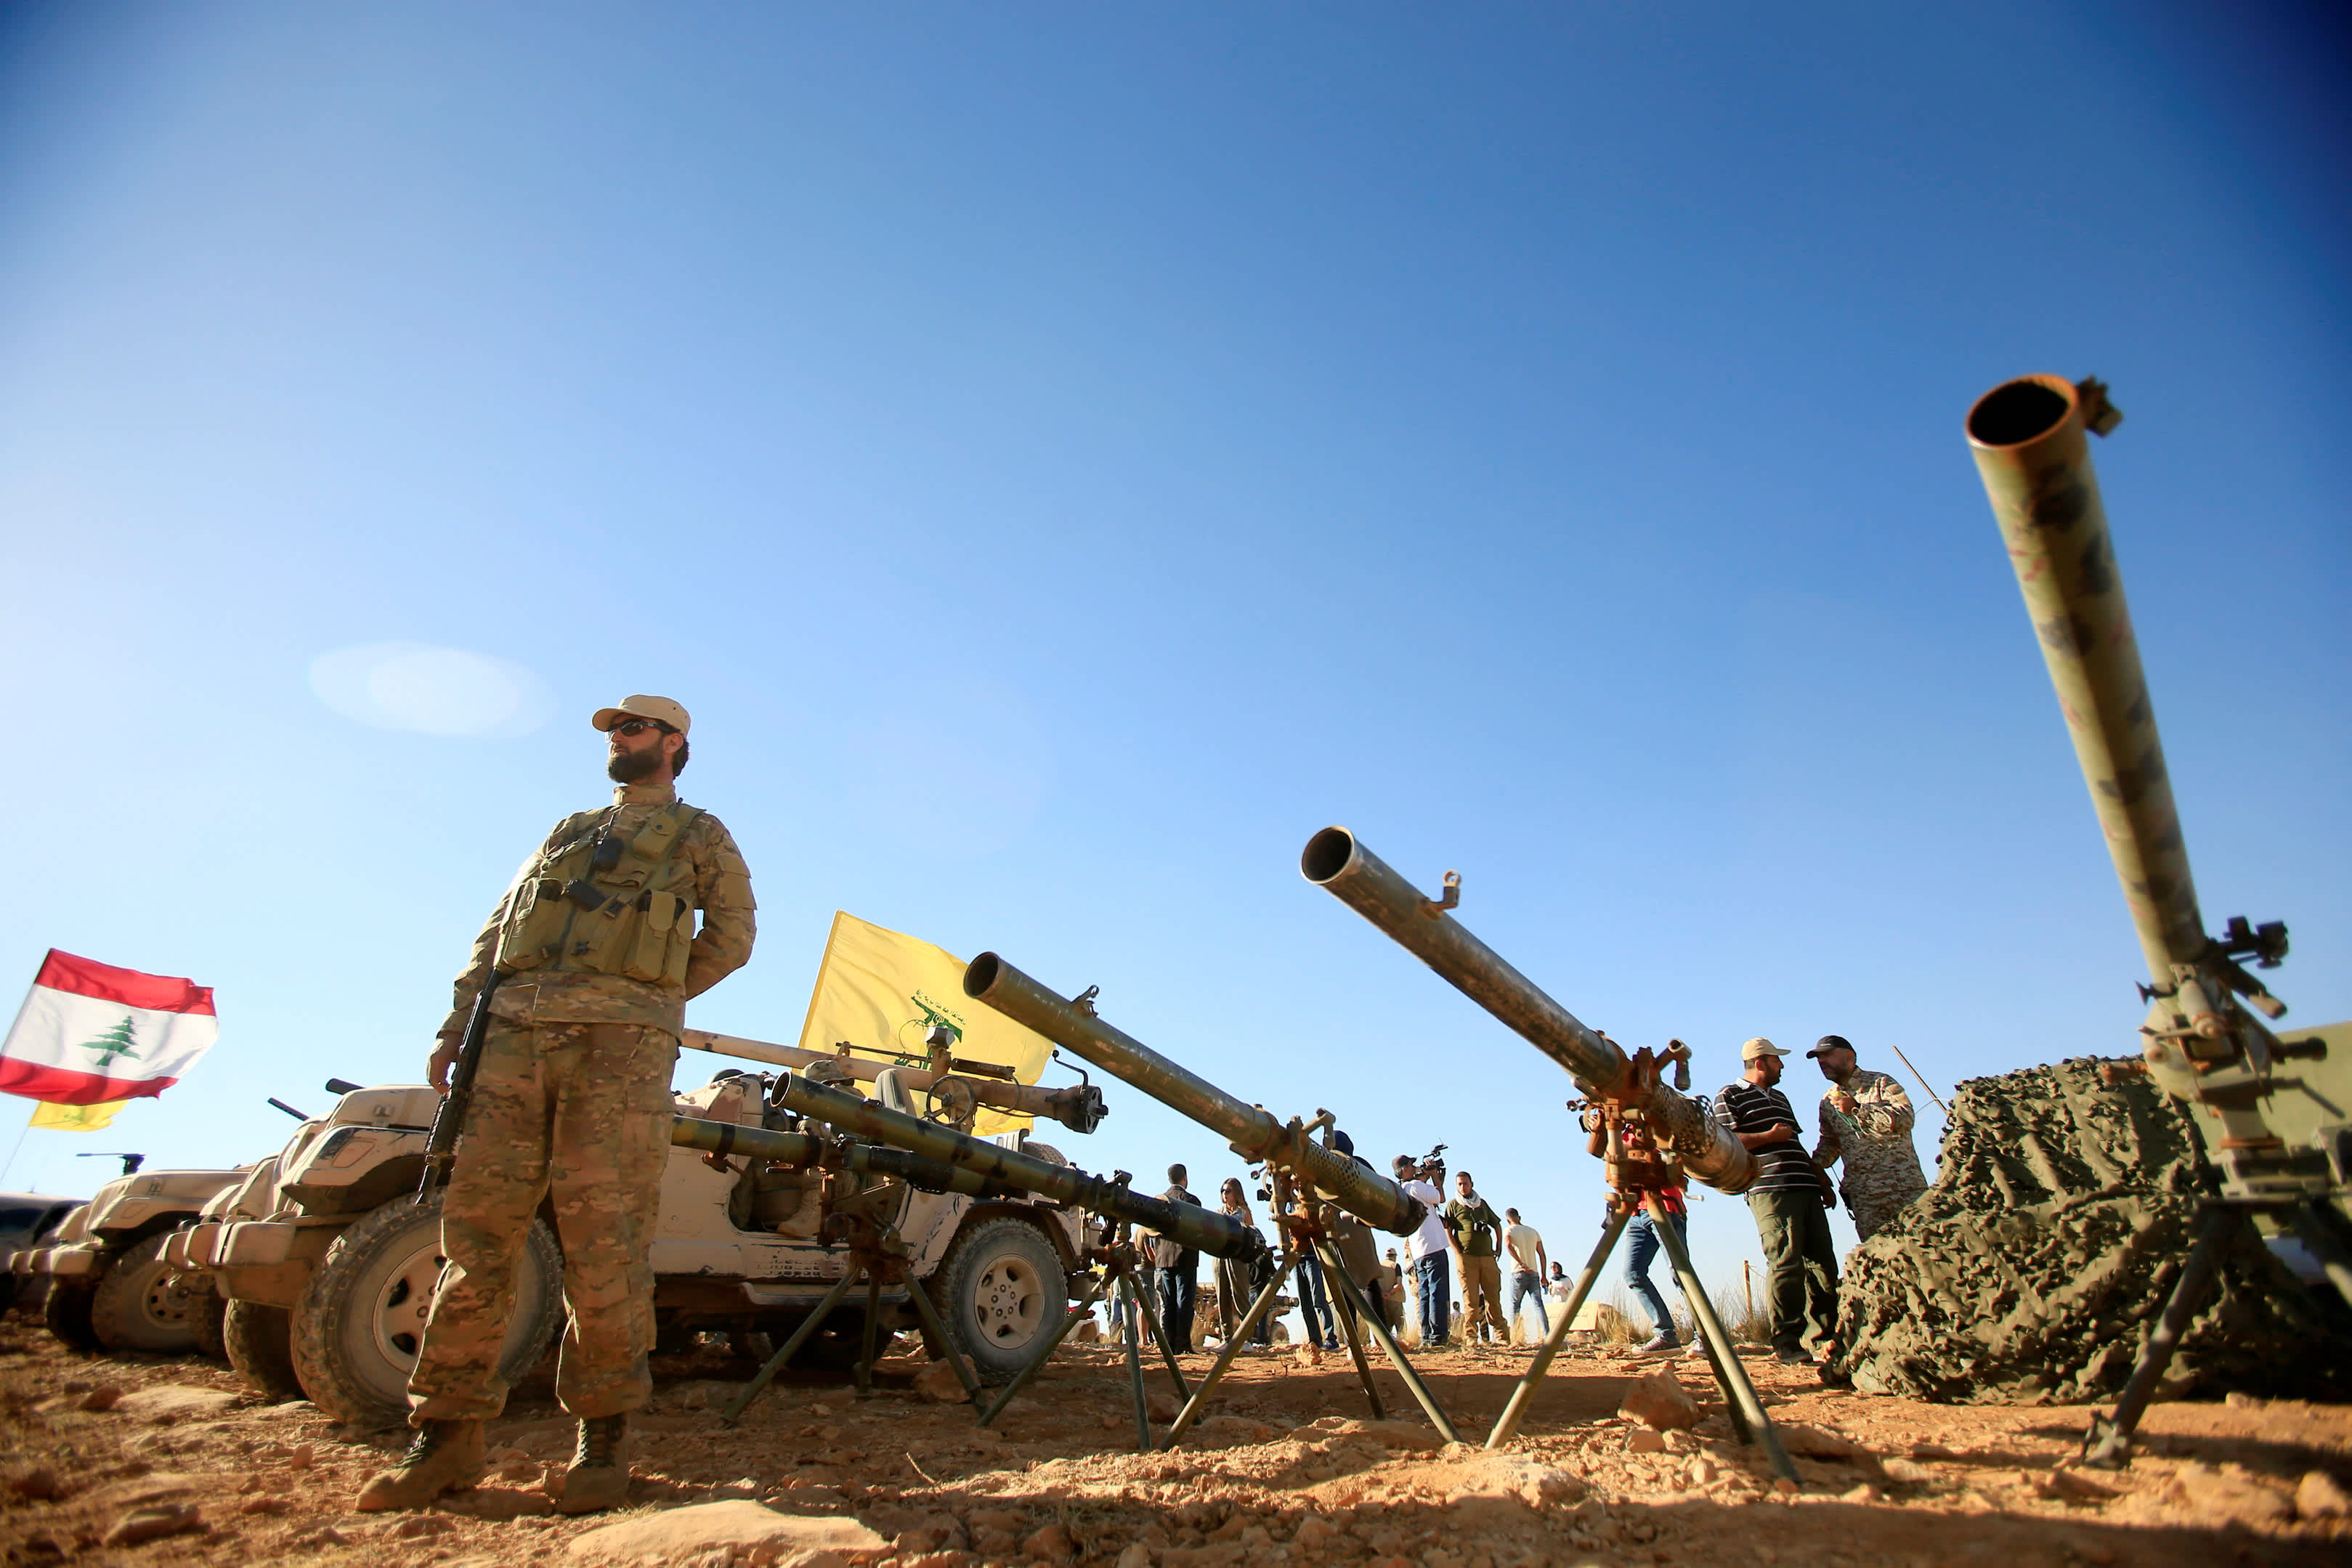 A Hezbollah fighter stands in front of anti-tank artillery at Juroud Arsal, the Syria-Lebanon border. (REUTERS)